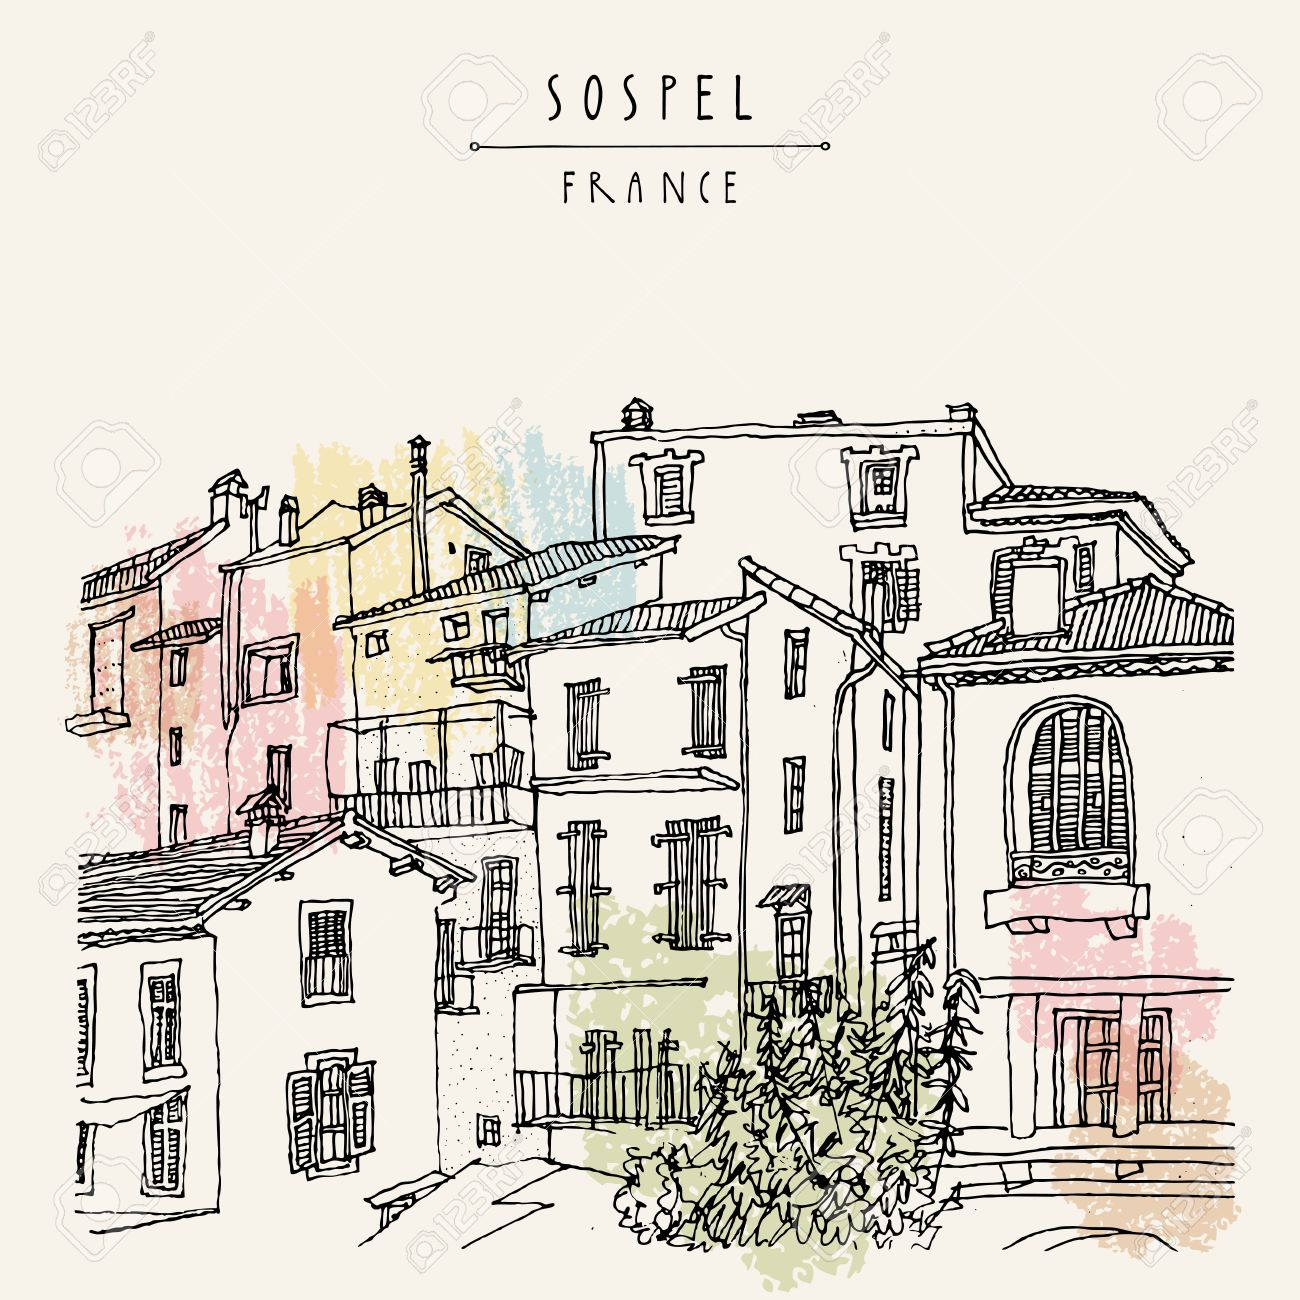 Nice antique houses in Sospel, France, Europe. Cozy European town on French Riviera. Mediterranean chic. Hand drawing. Travel sketch. Vintage touristic postcard, poster or book illustration in vector - 63467865